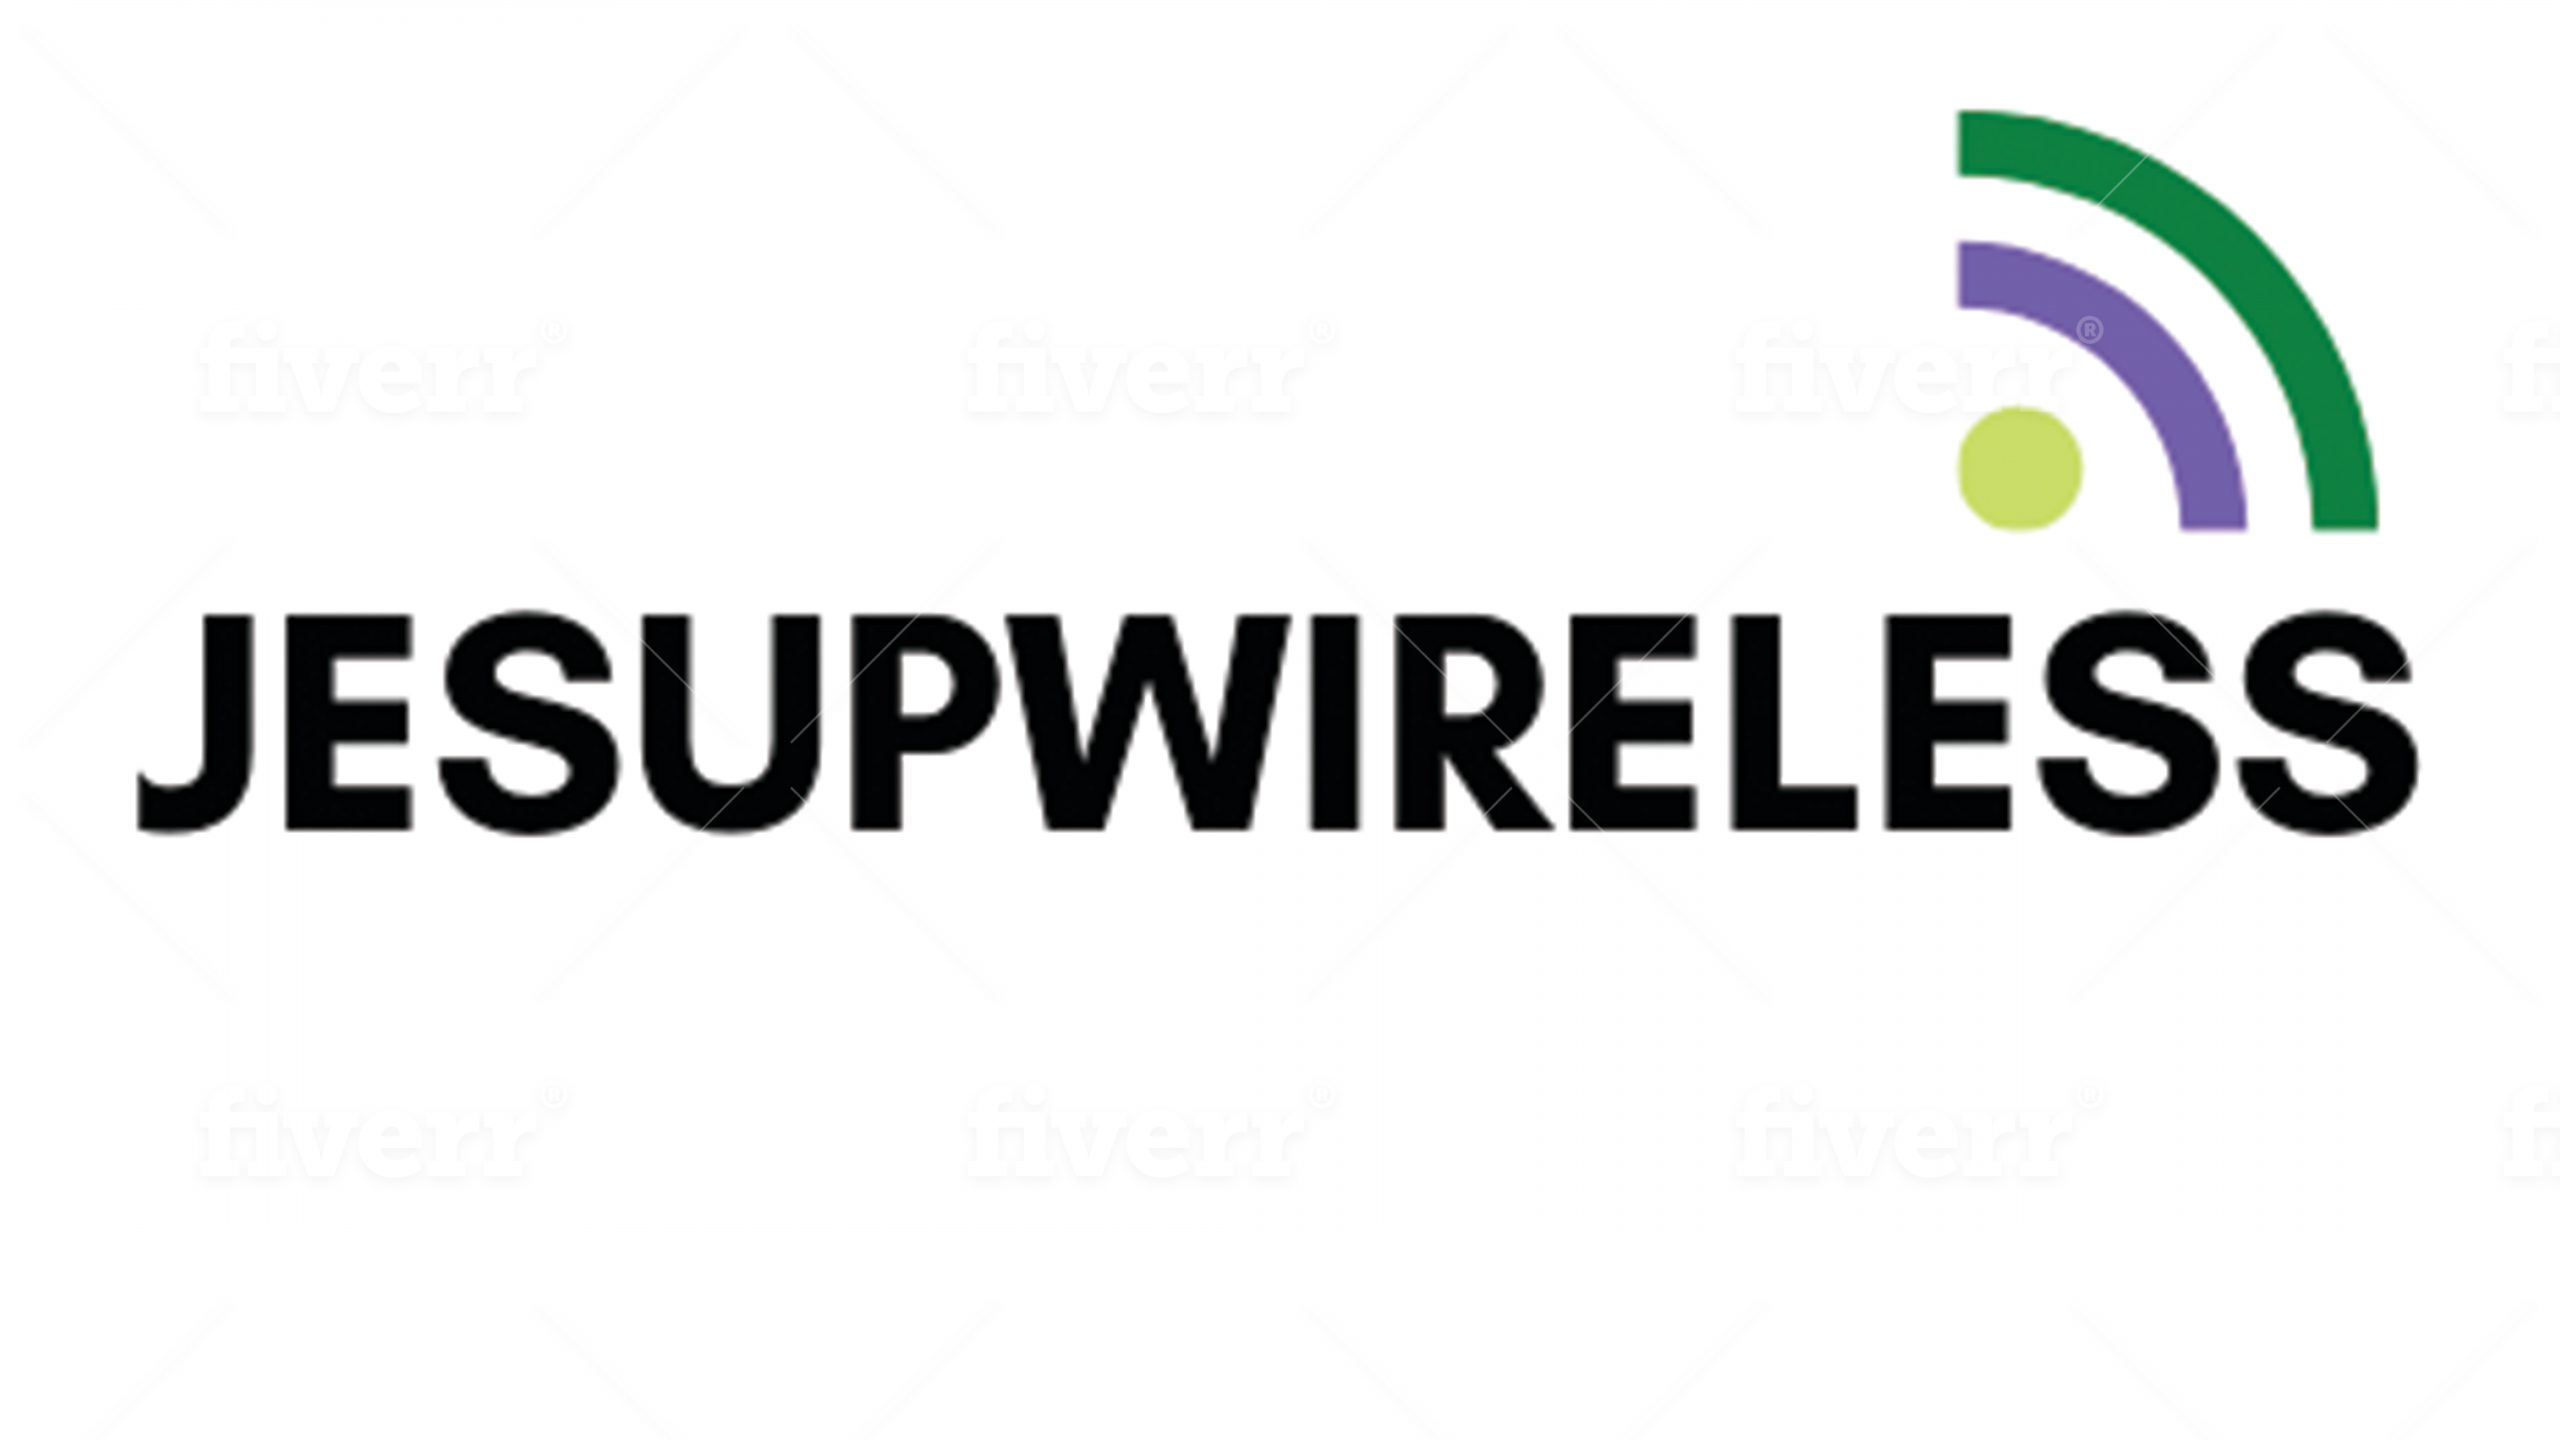 Jesupwireless